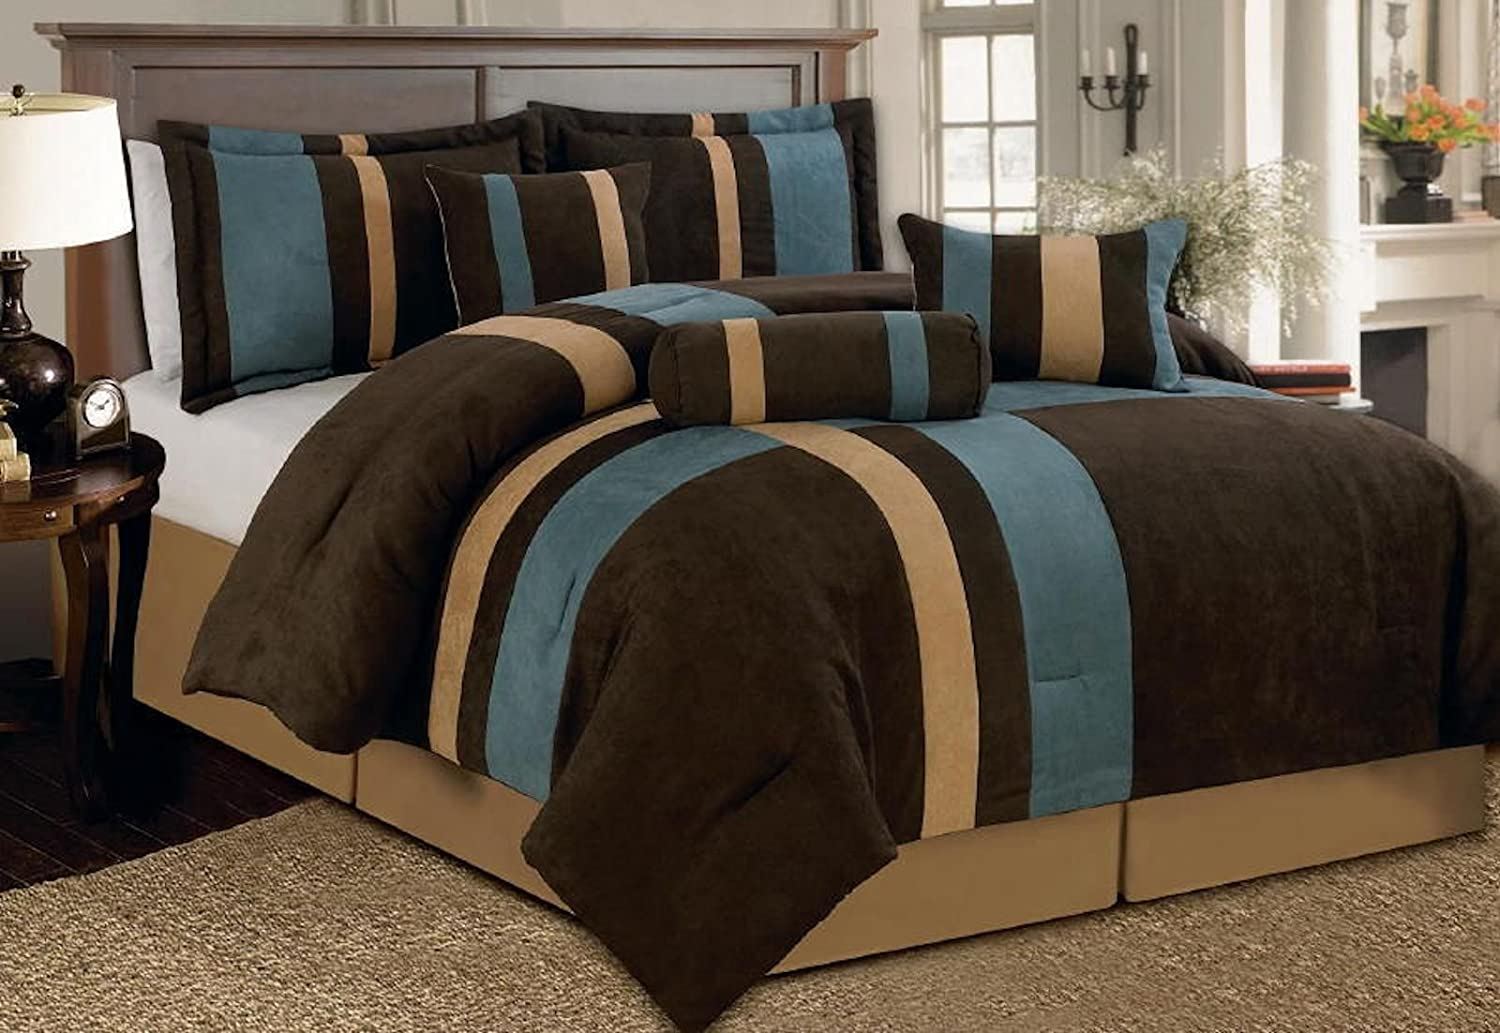 Legacy Decor 7 Piece Brown, Beige, and Blue Micro Suede Baywood Comforter Set Machine Washable Bed-in-a-Bag Set (Full)